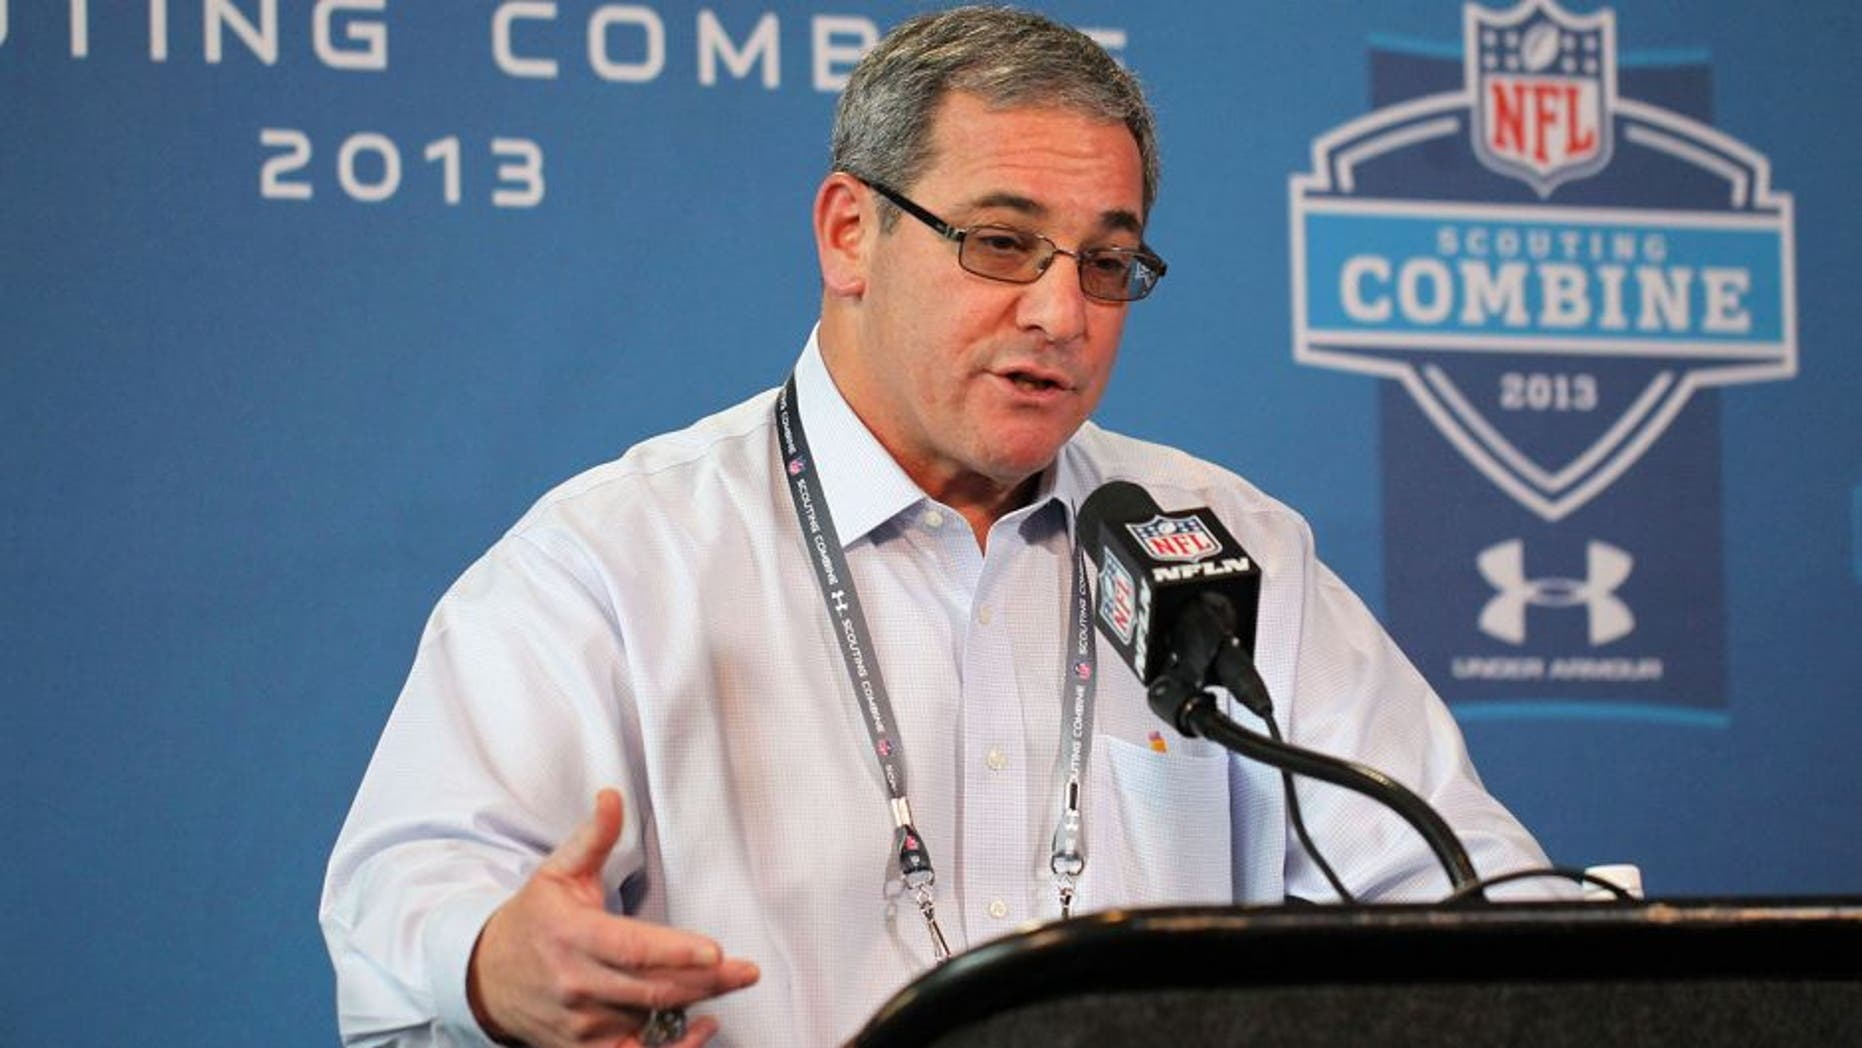 Feb 21, 2013; Indianapolis, IN, USA; Carolina Panthers general manager Dave Gettleman speaks at a press conference during the 2013 NFL Combine at Lucas Oil Stadium. Mandatory Credit: Brian Spurlock-USA TODAY Sports